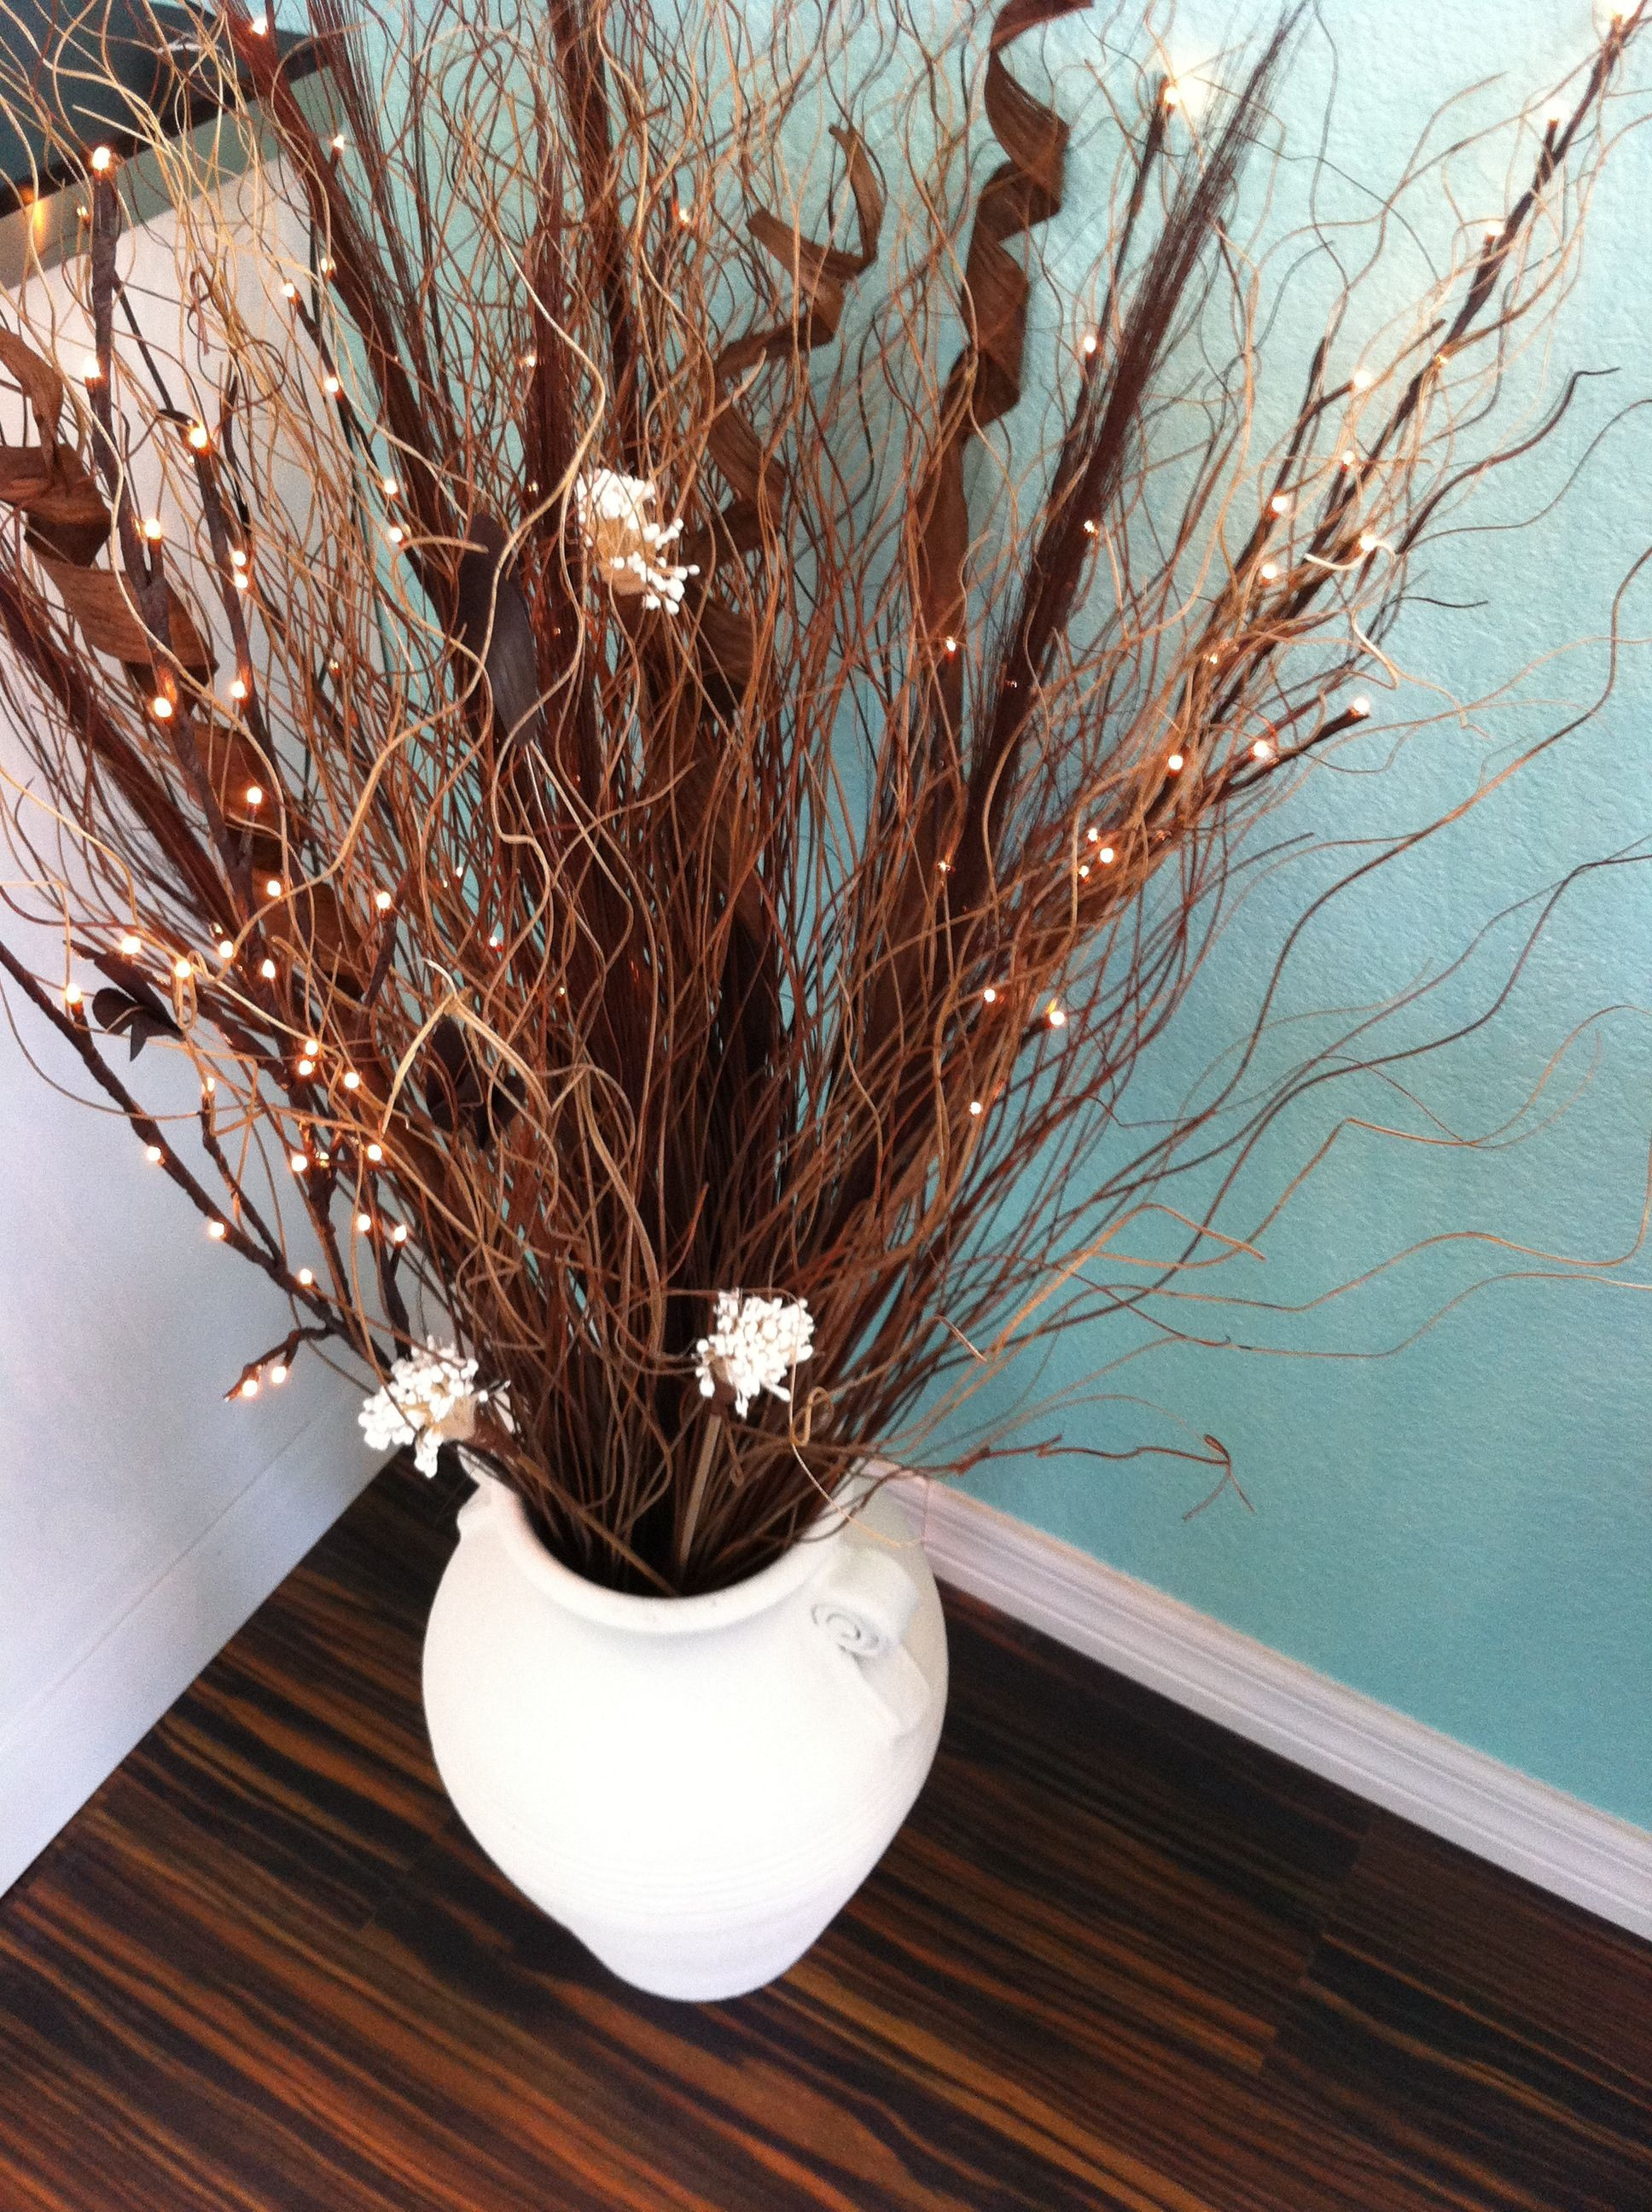 turquoise flower vase of decorative branches for weddings awesome tall vase centerpiece ideas throughout decorative branches for weddings fresh lighted branches in painted pot cottage pinterest of decorative branches for